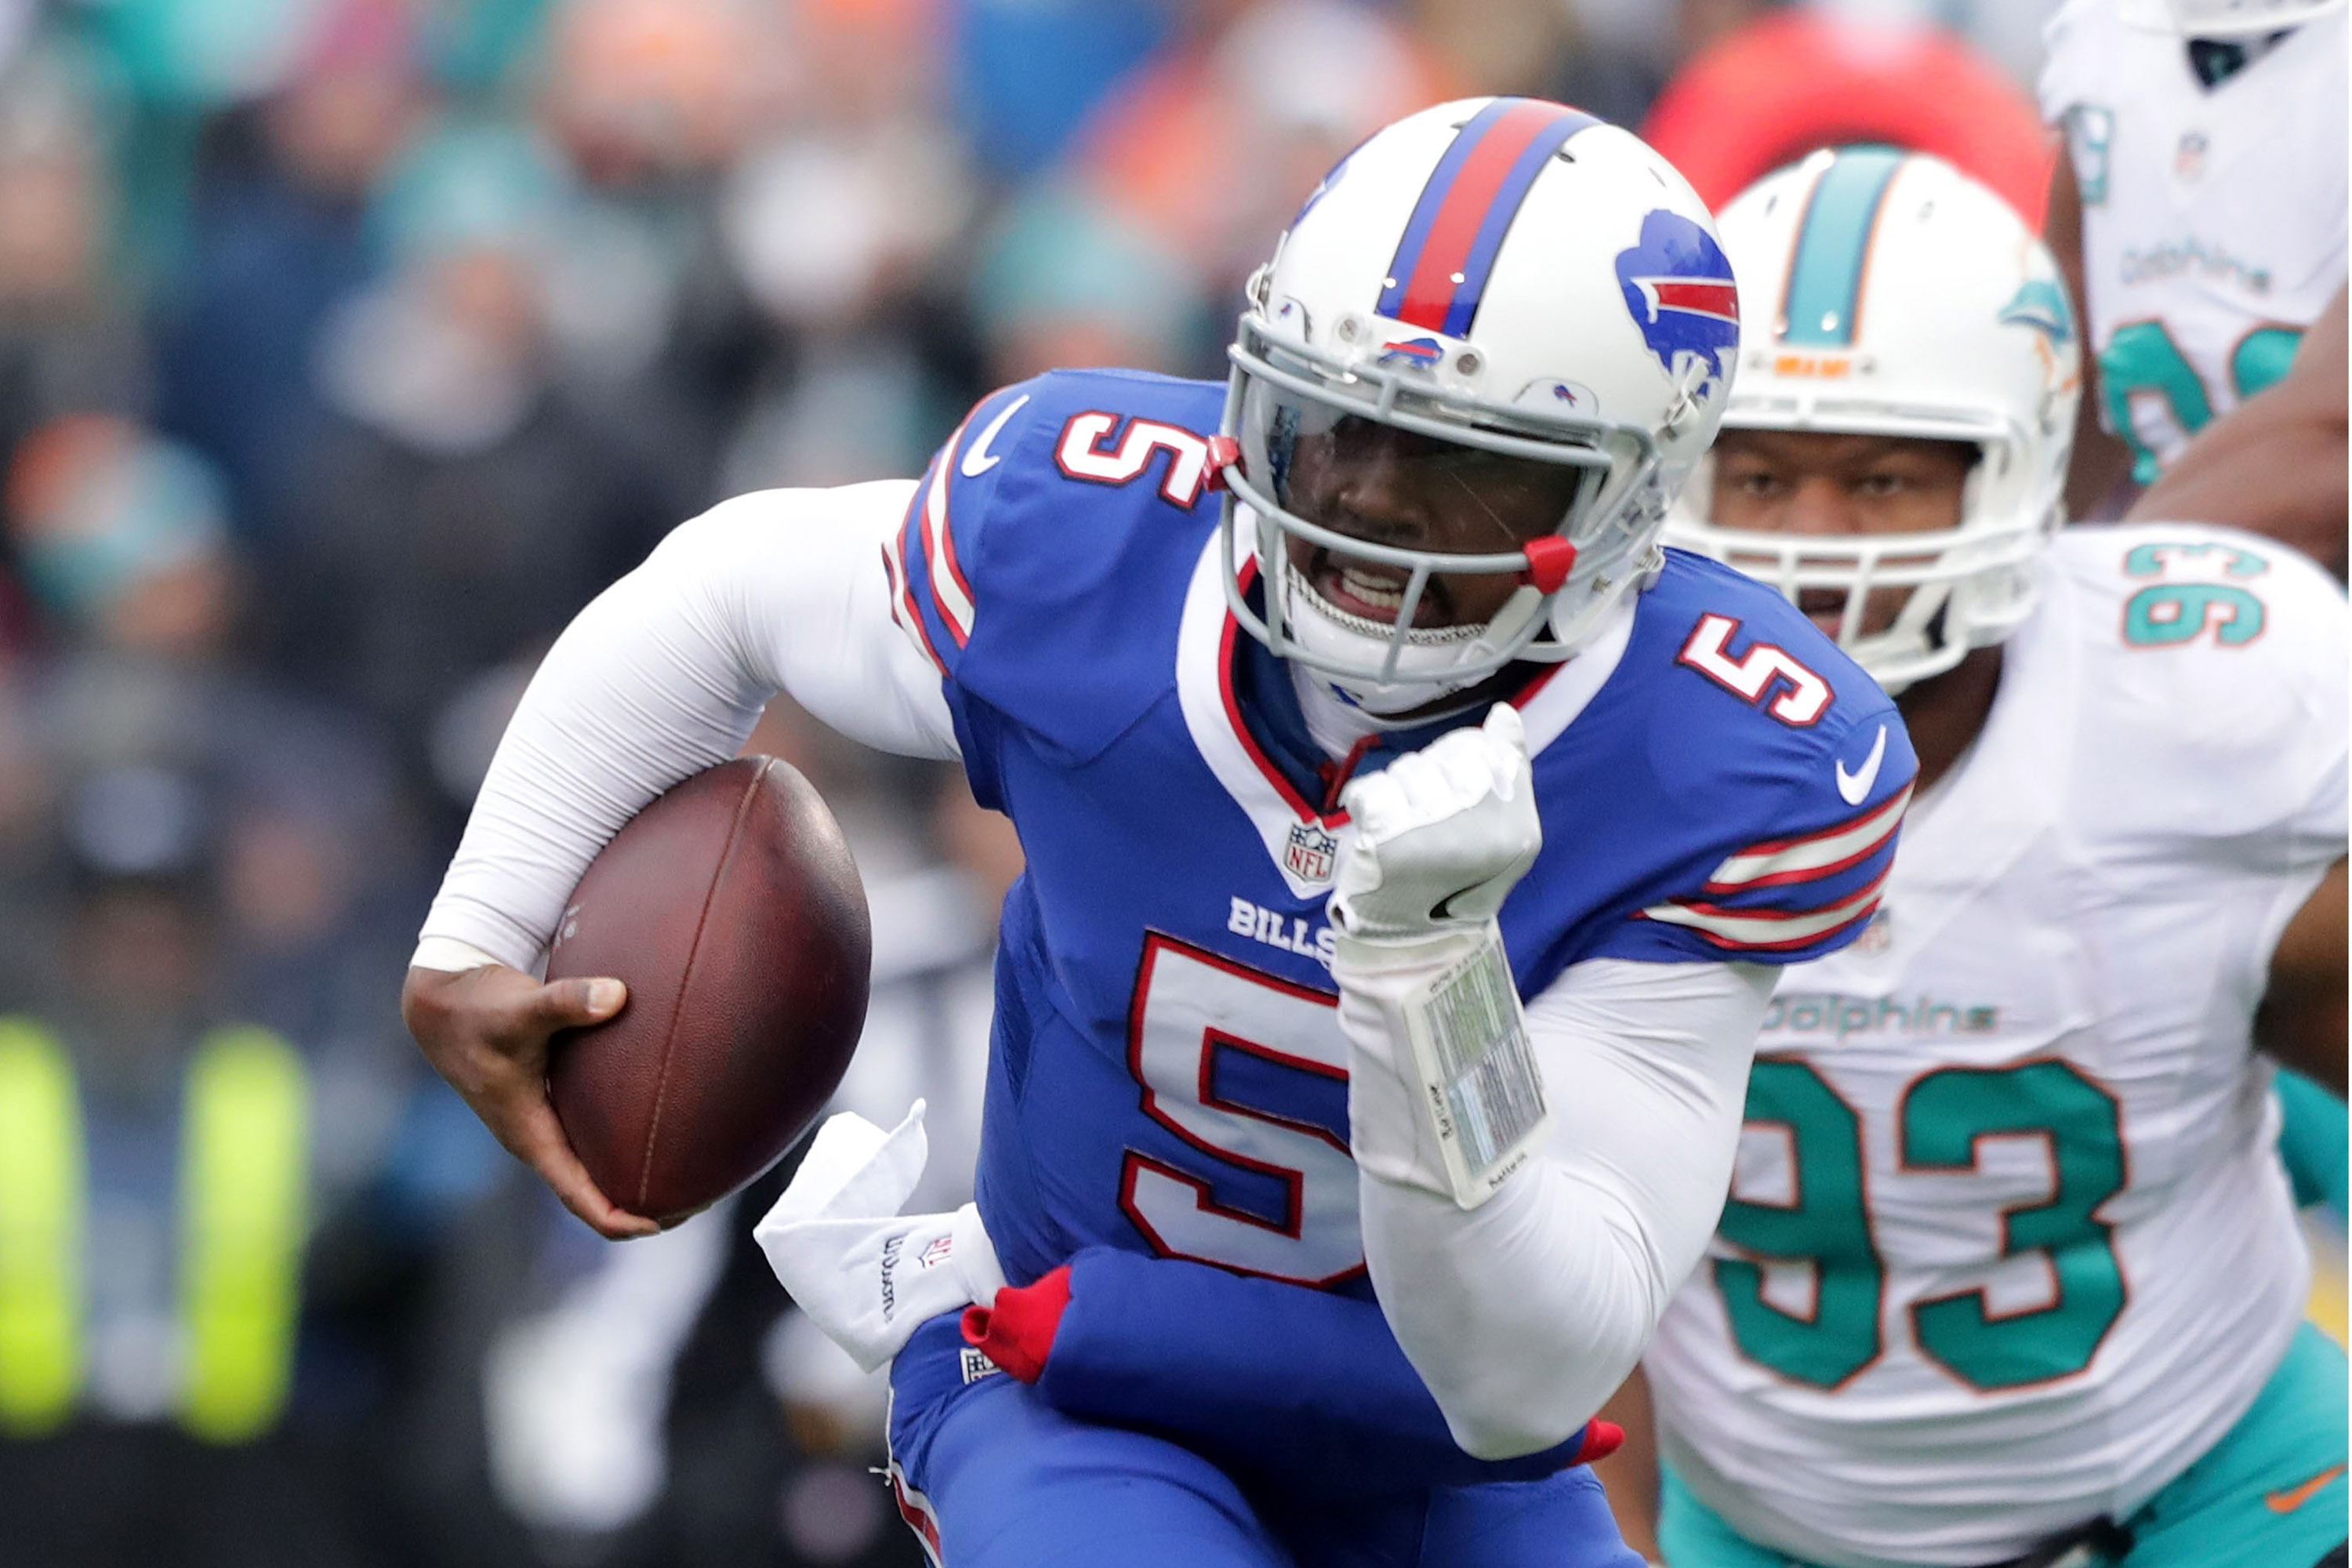 ack Tyrod Taylor has played some of his best football against the Dolphins. (Getty Images)